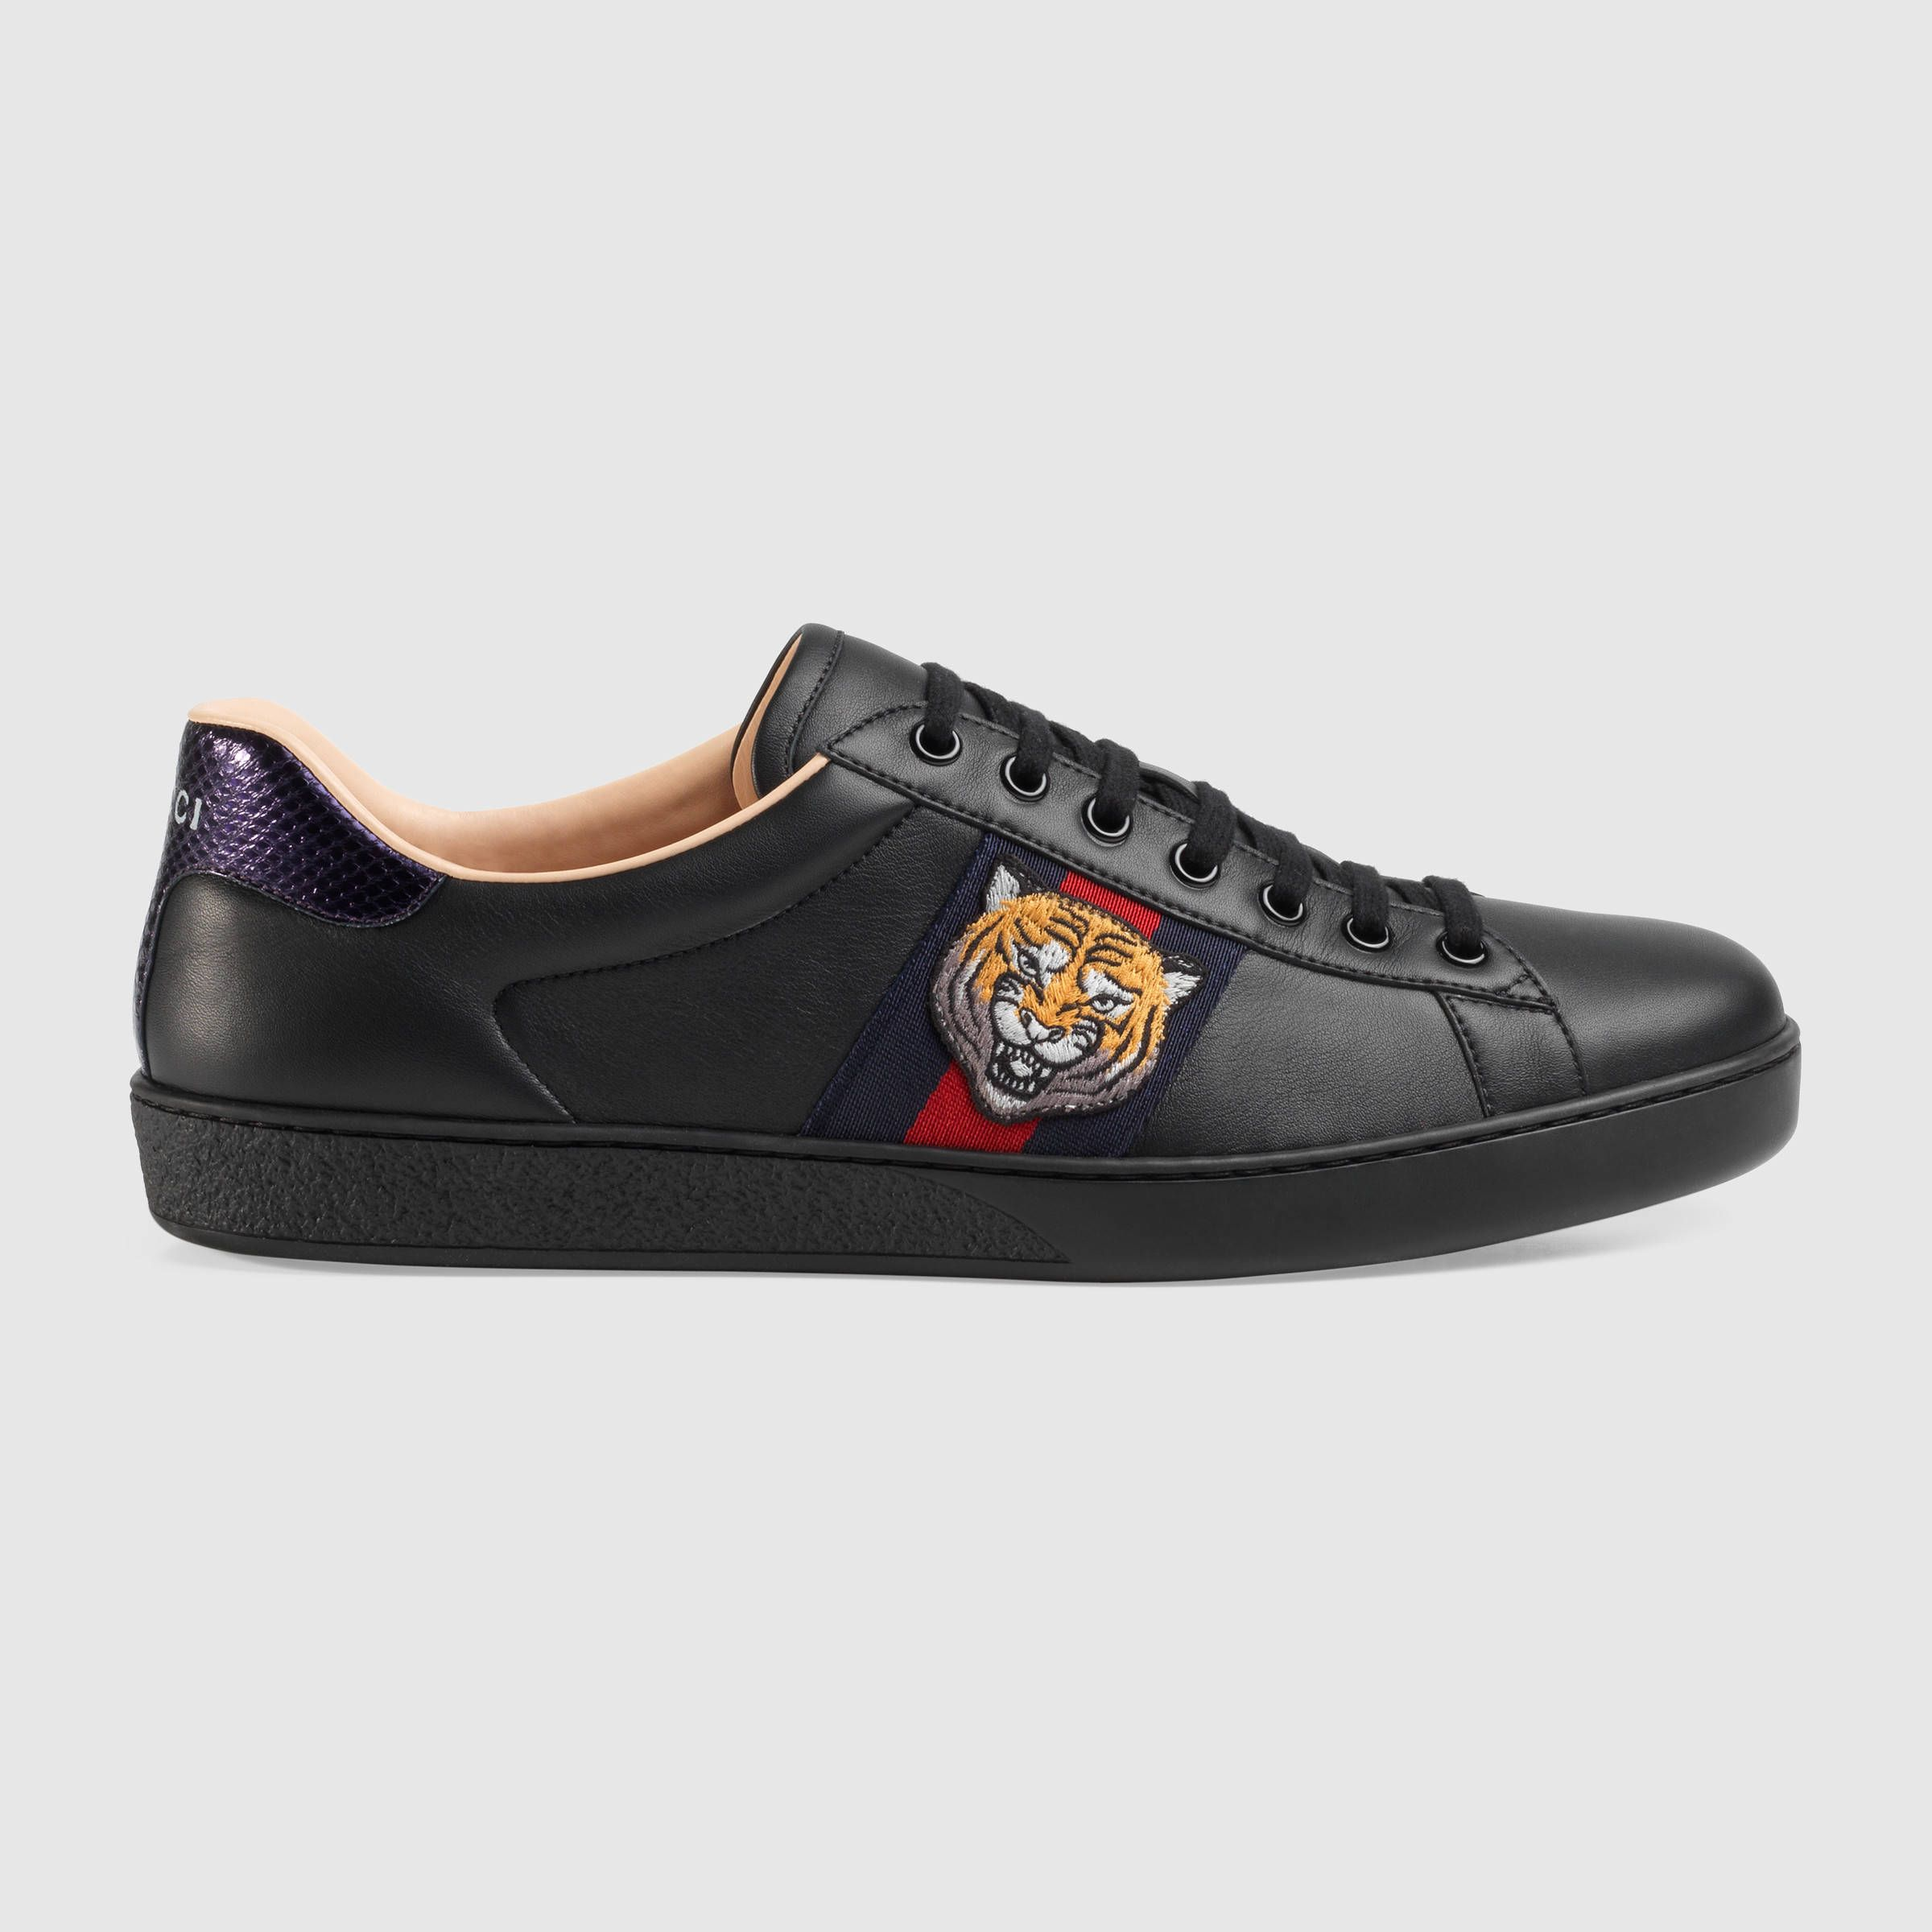 san francisco a2239 b8682 Gucci Shoes Online Exclusive  810